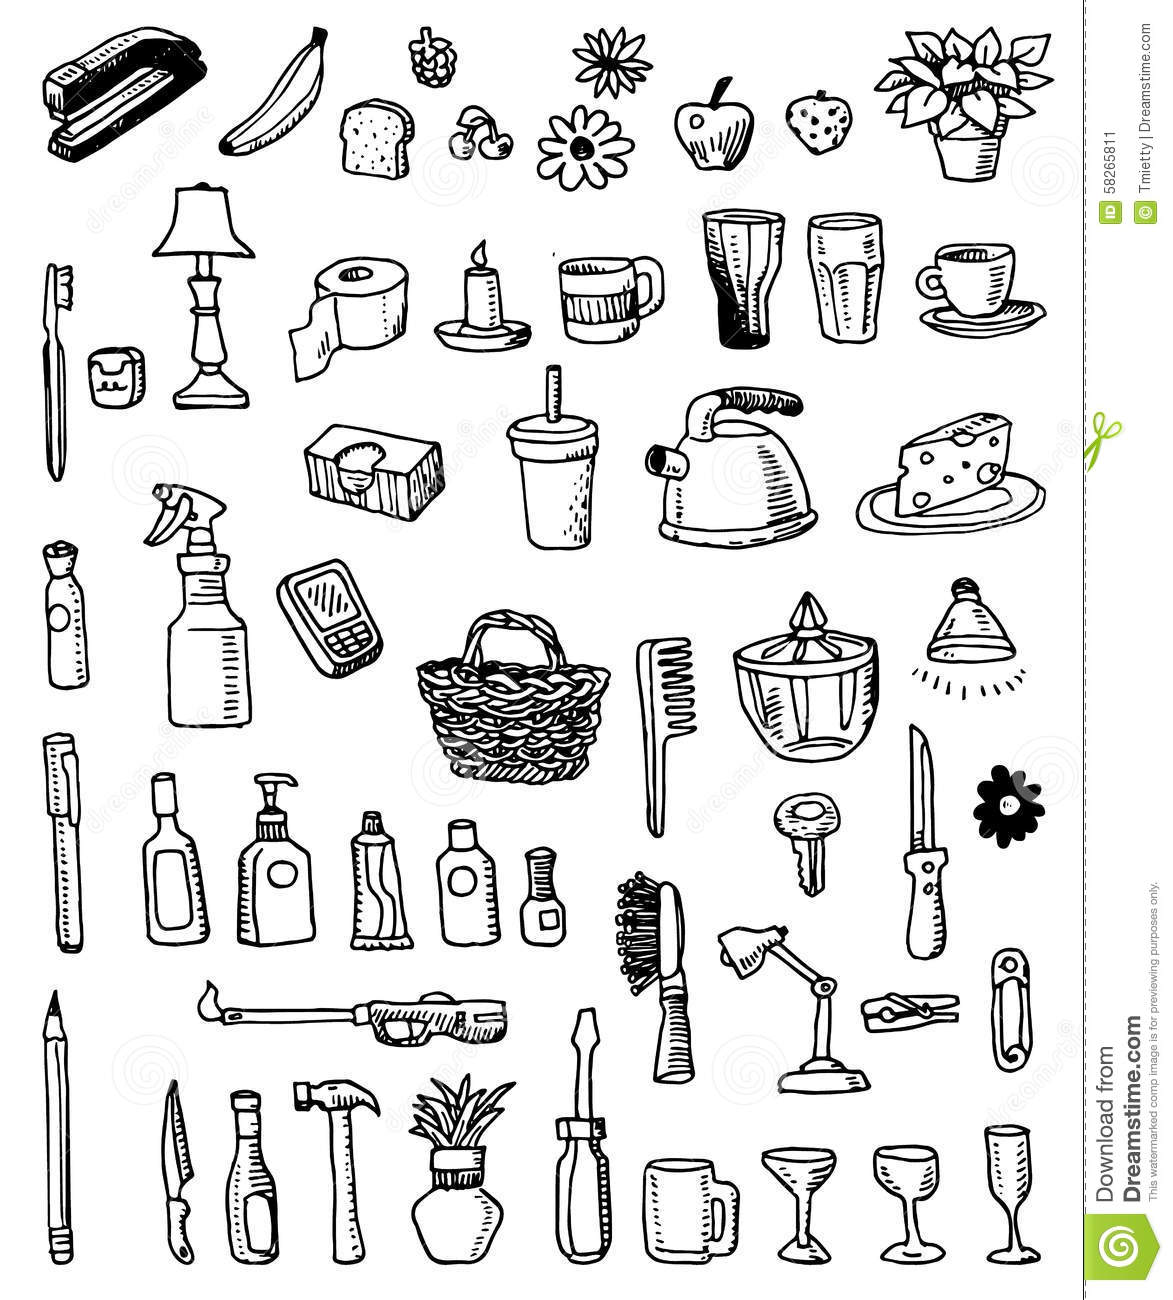 Household Doodle Items Stock Vector Illustration Of Apple